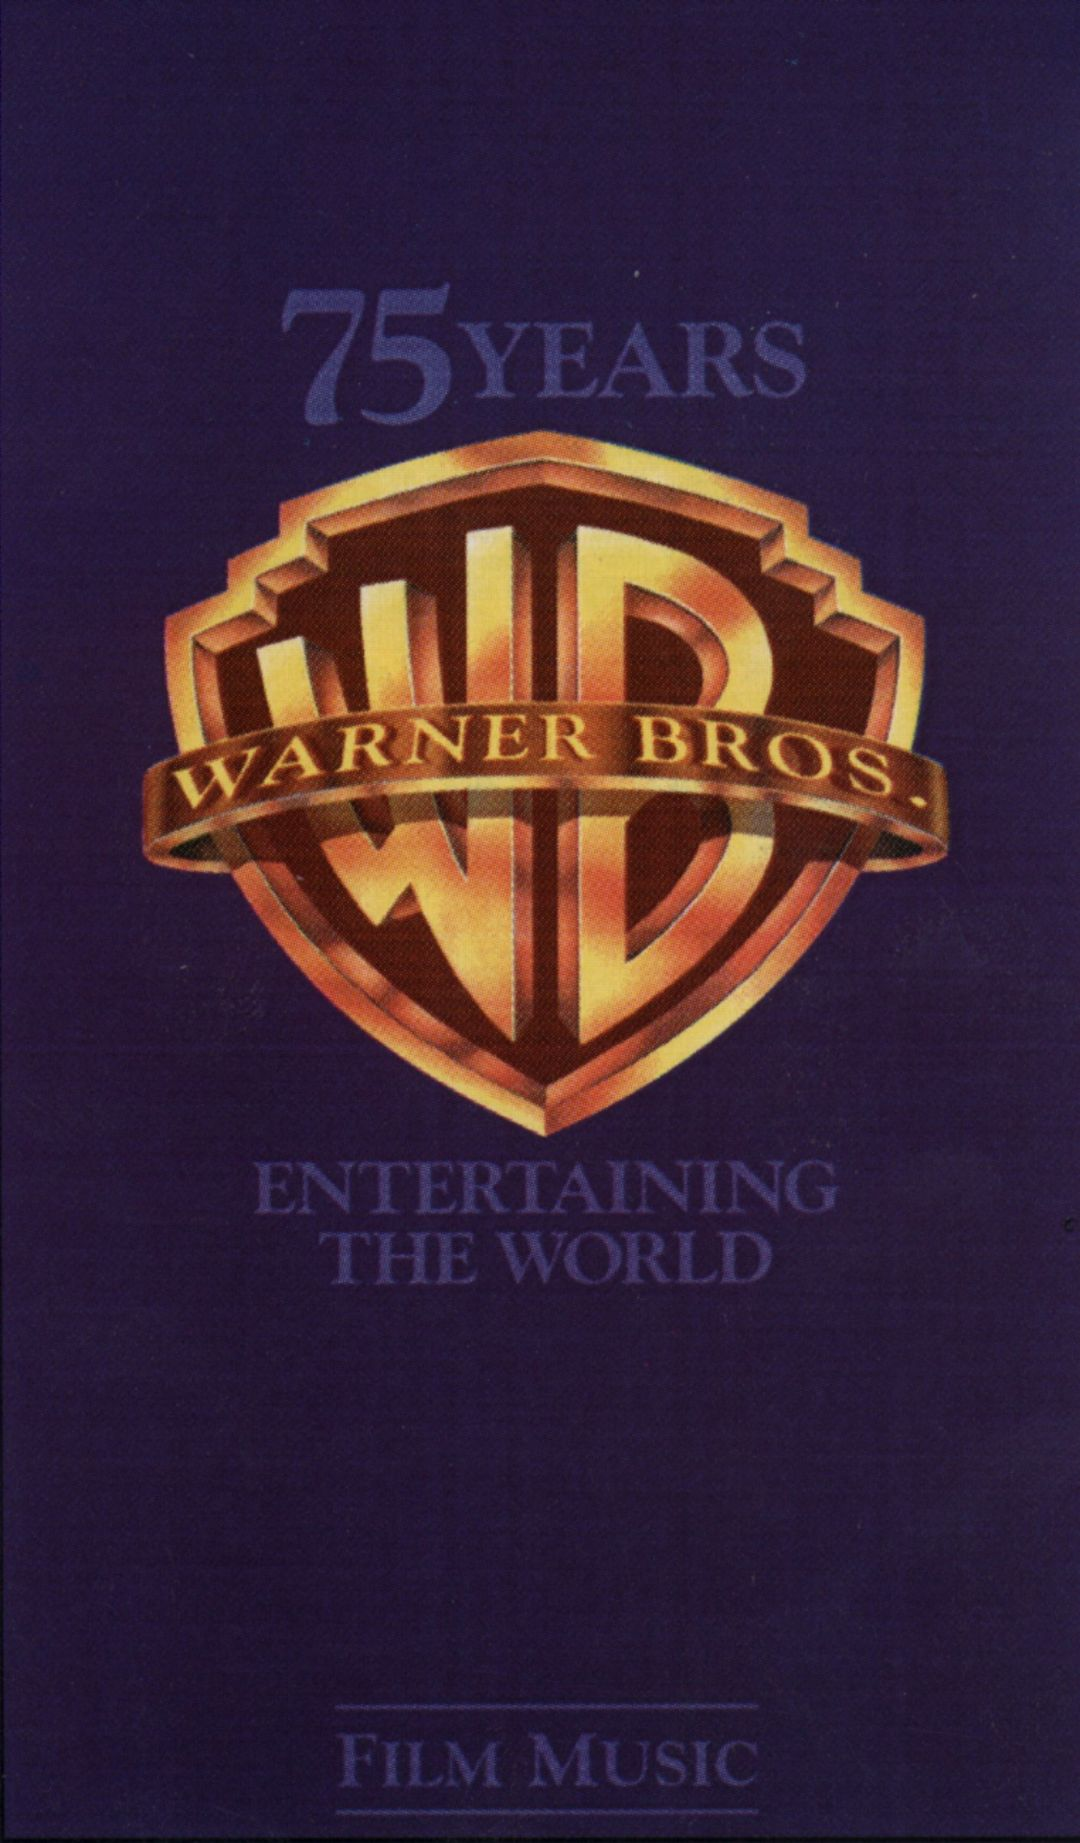 Warner Brothers 75 Years Entertaining Various Artists